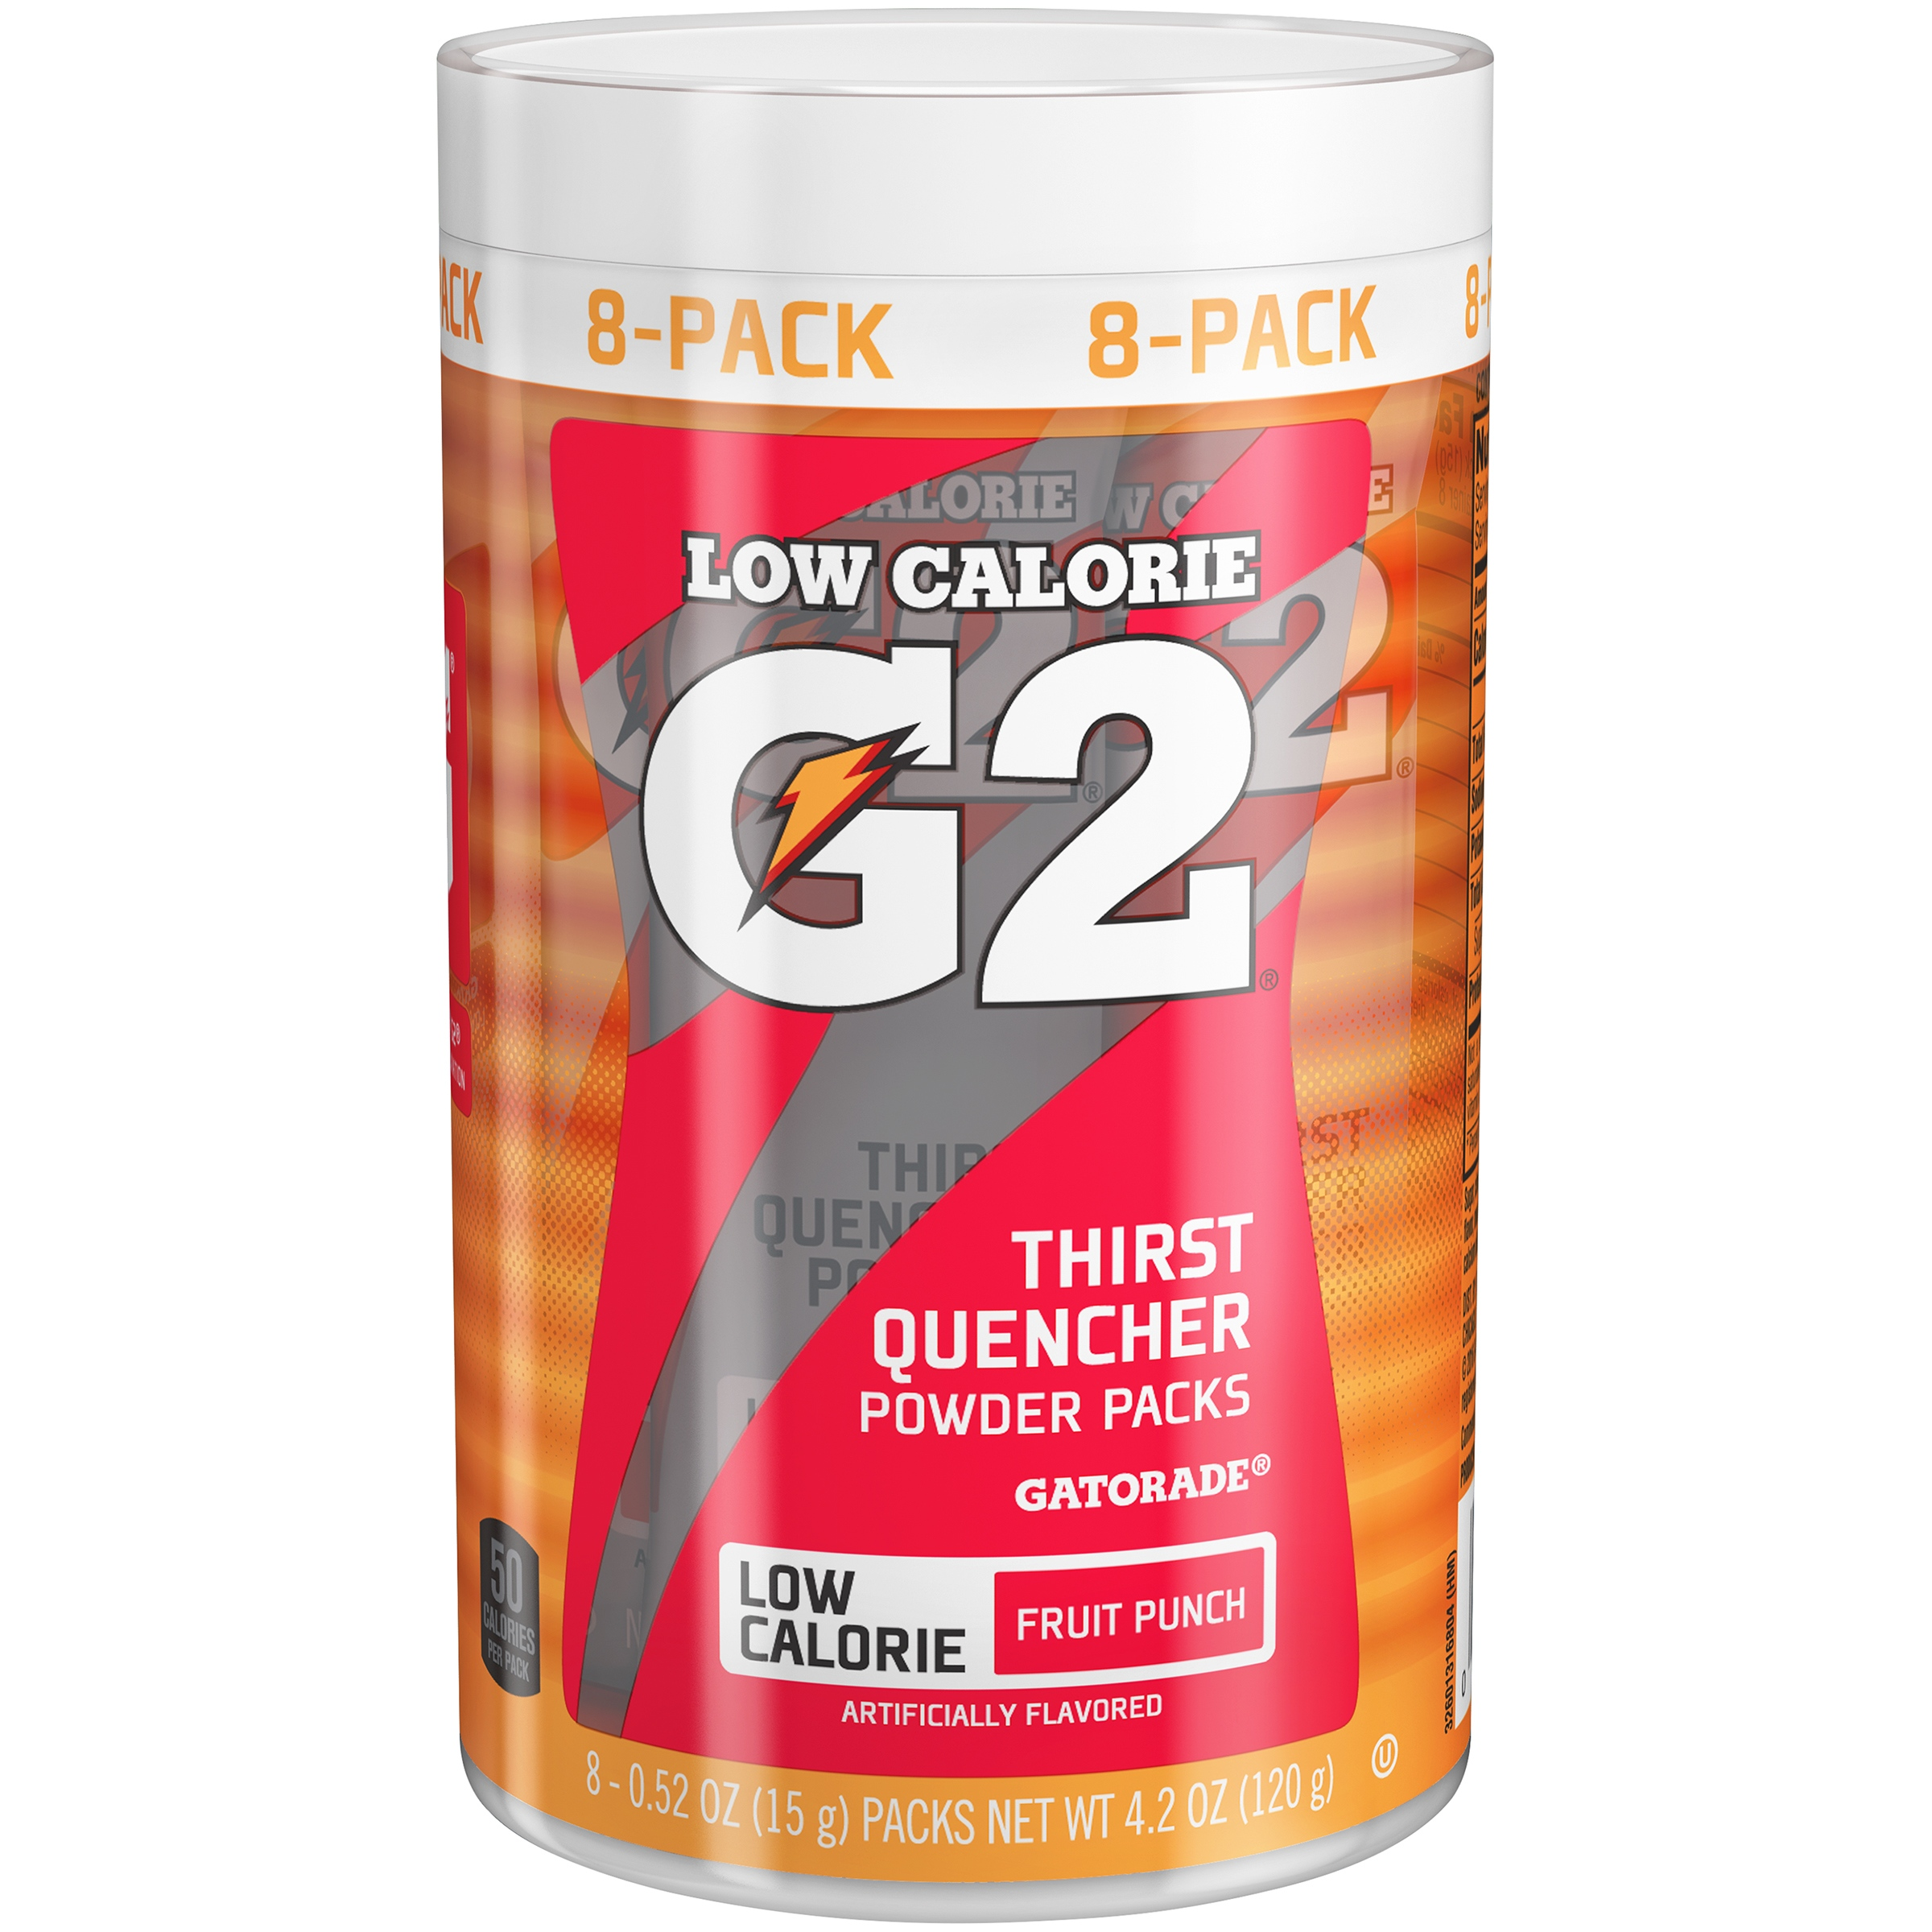 G2® Low Calorie Fruit Punch Thirst Quencher Powder Packs 8-0.52 oz. Packs